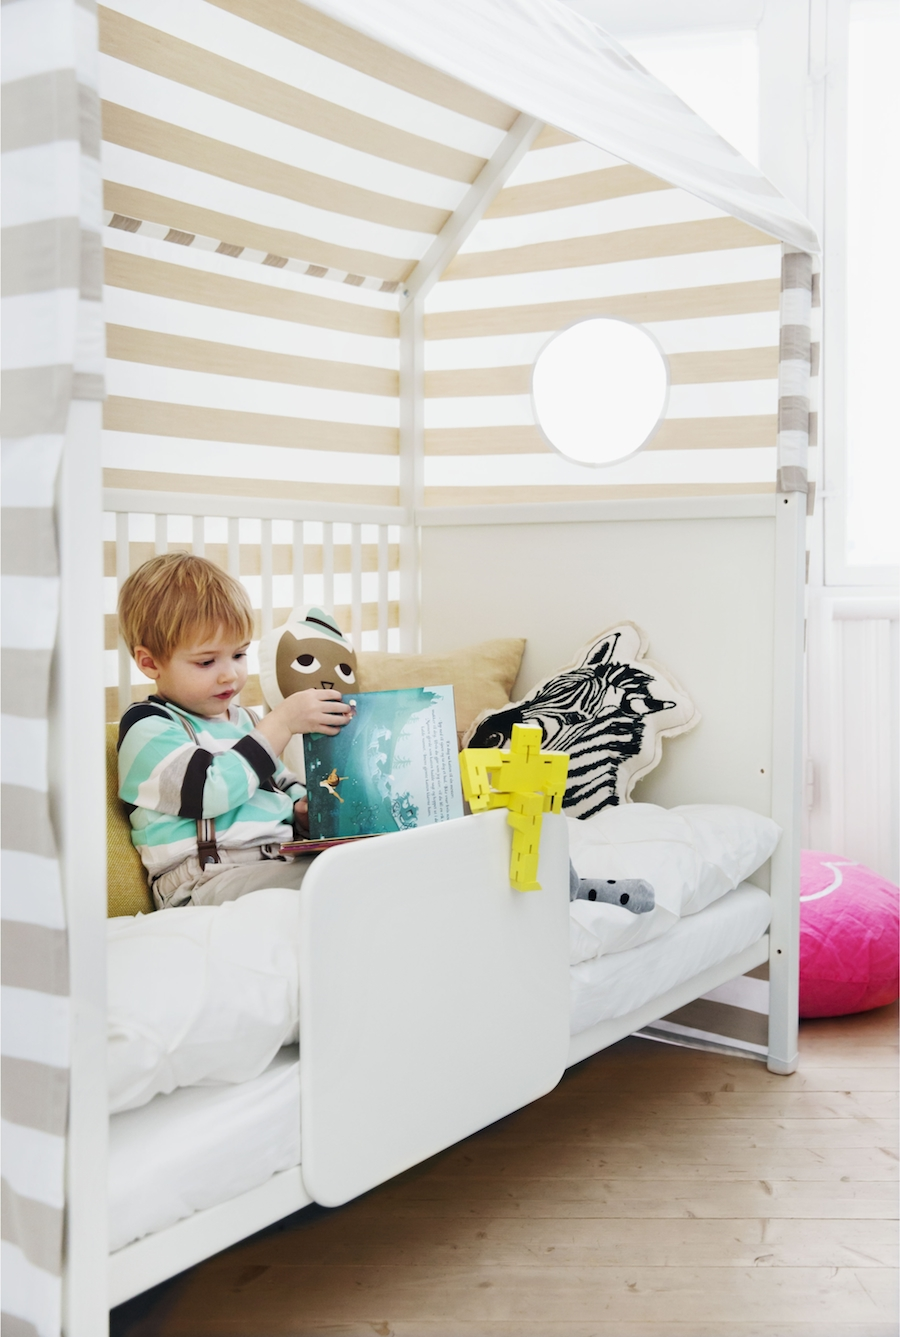 stokke bett free sleepi wchst vom ber das gitterbett bis. Black Bedroom Furniture Sets. Home Design Ideas